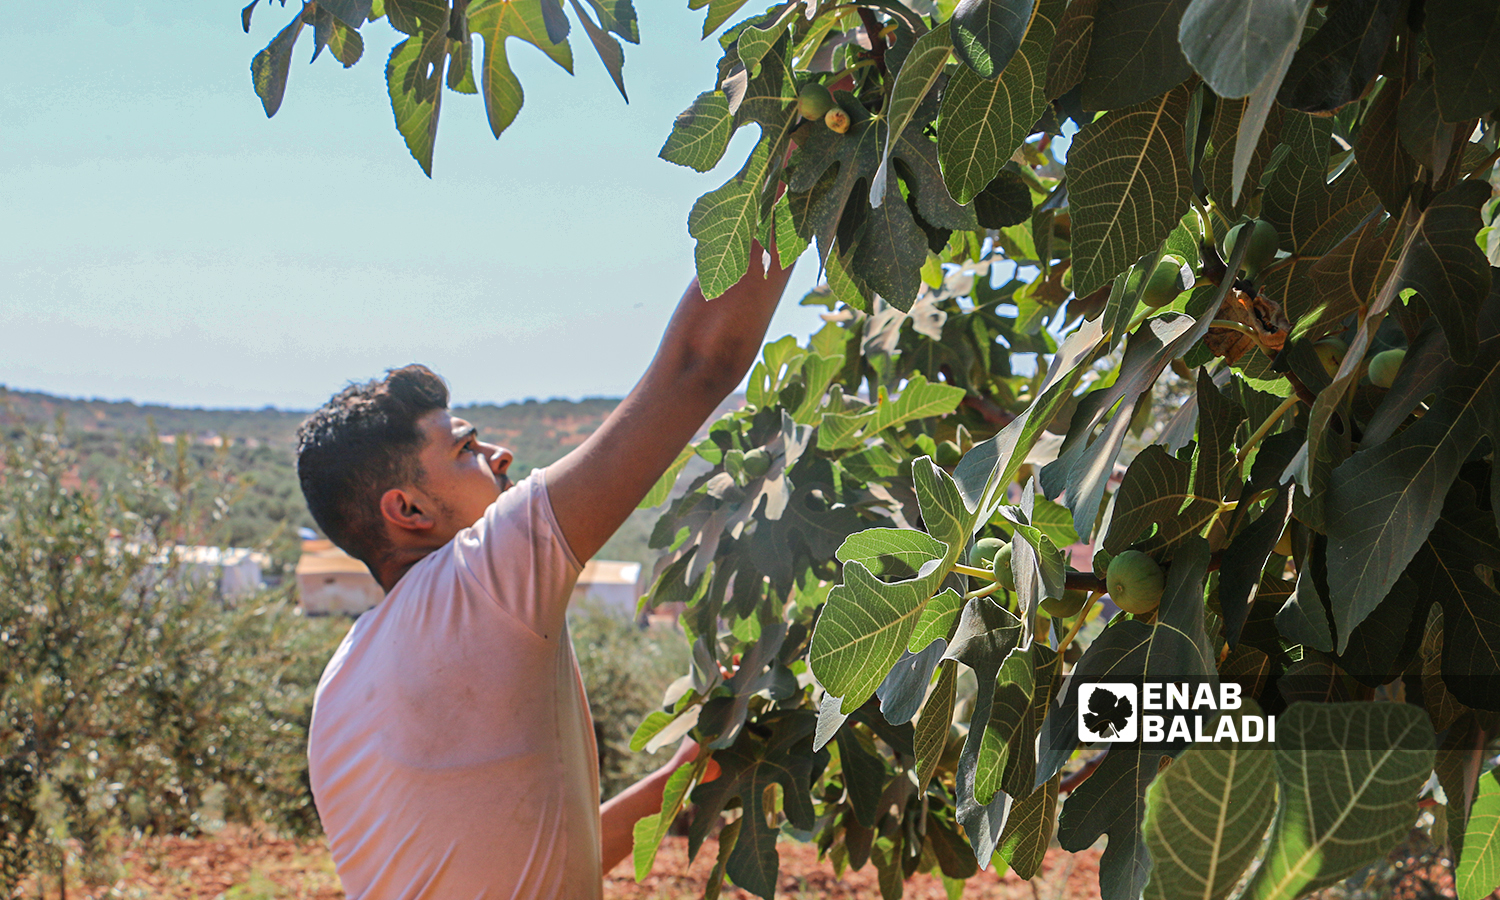 A farmer picks up a fig from a tree in a field in the town of Harbnoush in Idlib countryside on 31 July 2021 (Enab Baladi-Iyad Abdel Jawad)